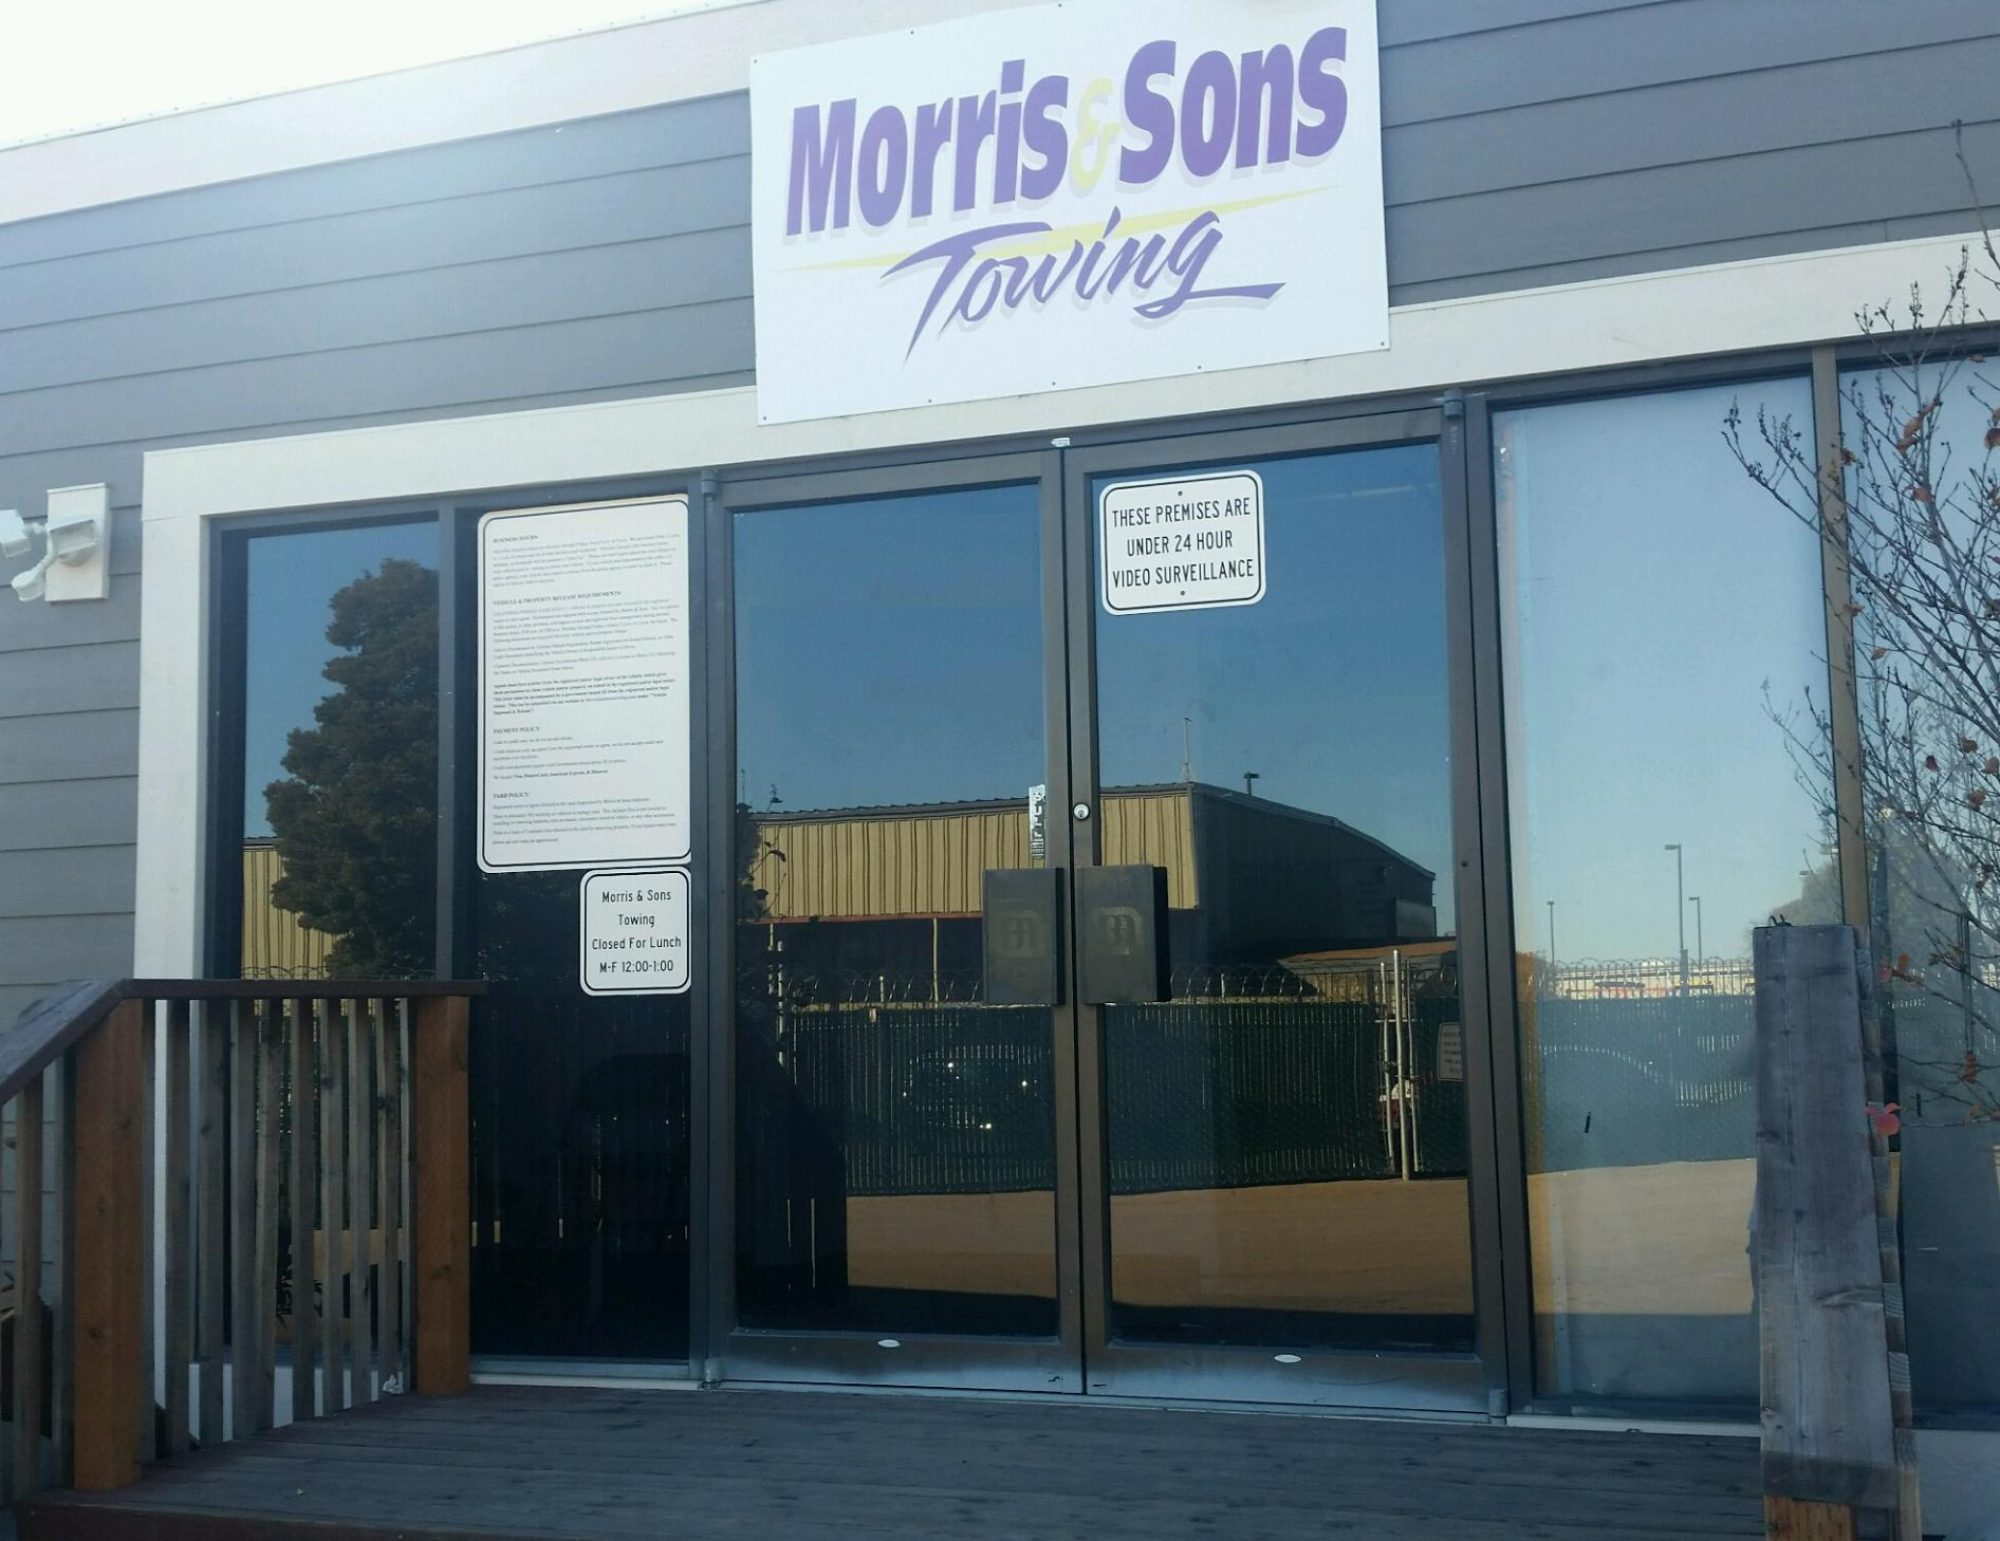 Morris & Sons Towing